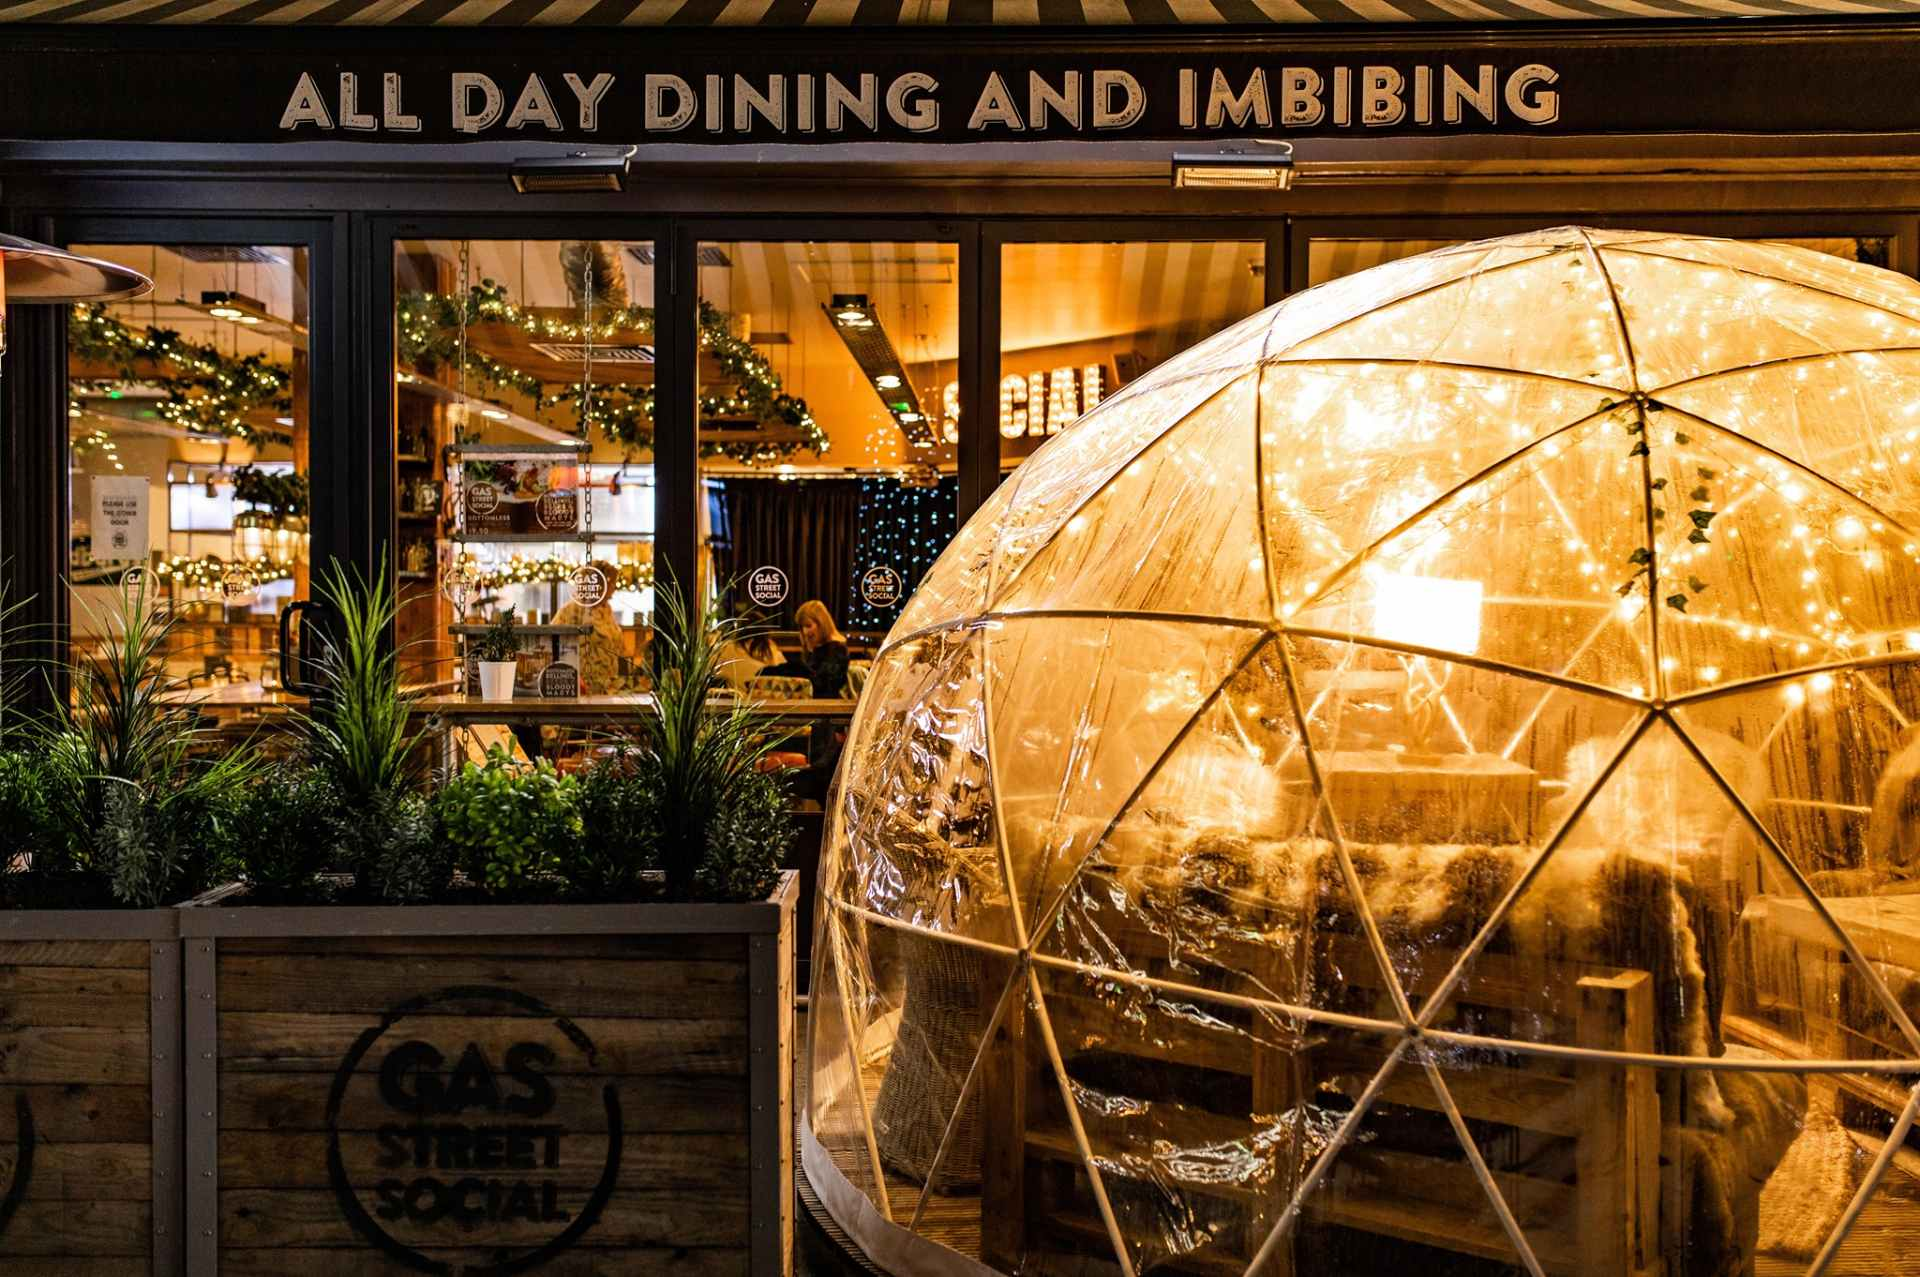 dome-lit-up-outside-gas-street-social-restaurant-at-night-bottomless-brunch-birmingham